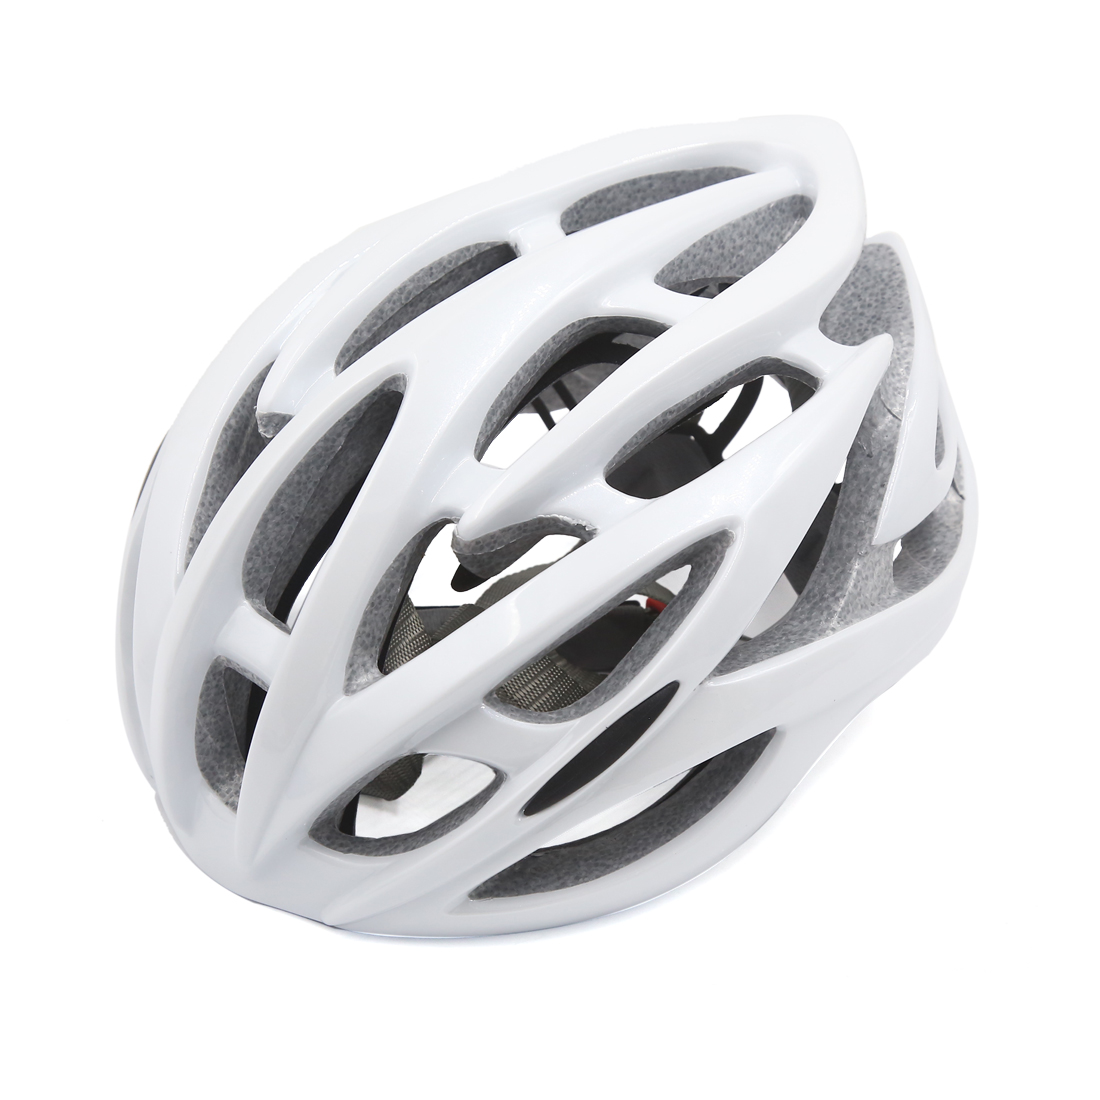 White 26 Vents EPS Adjusable Unisex Adult Helmet for Bike Bicycle Cycling